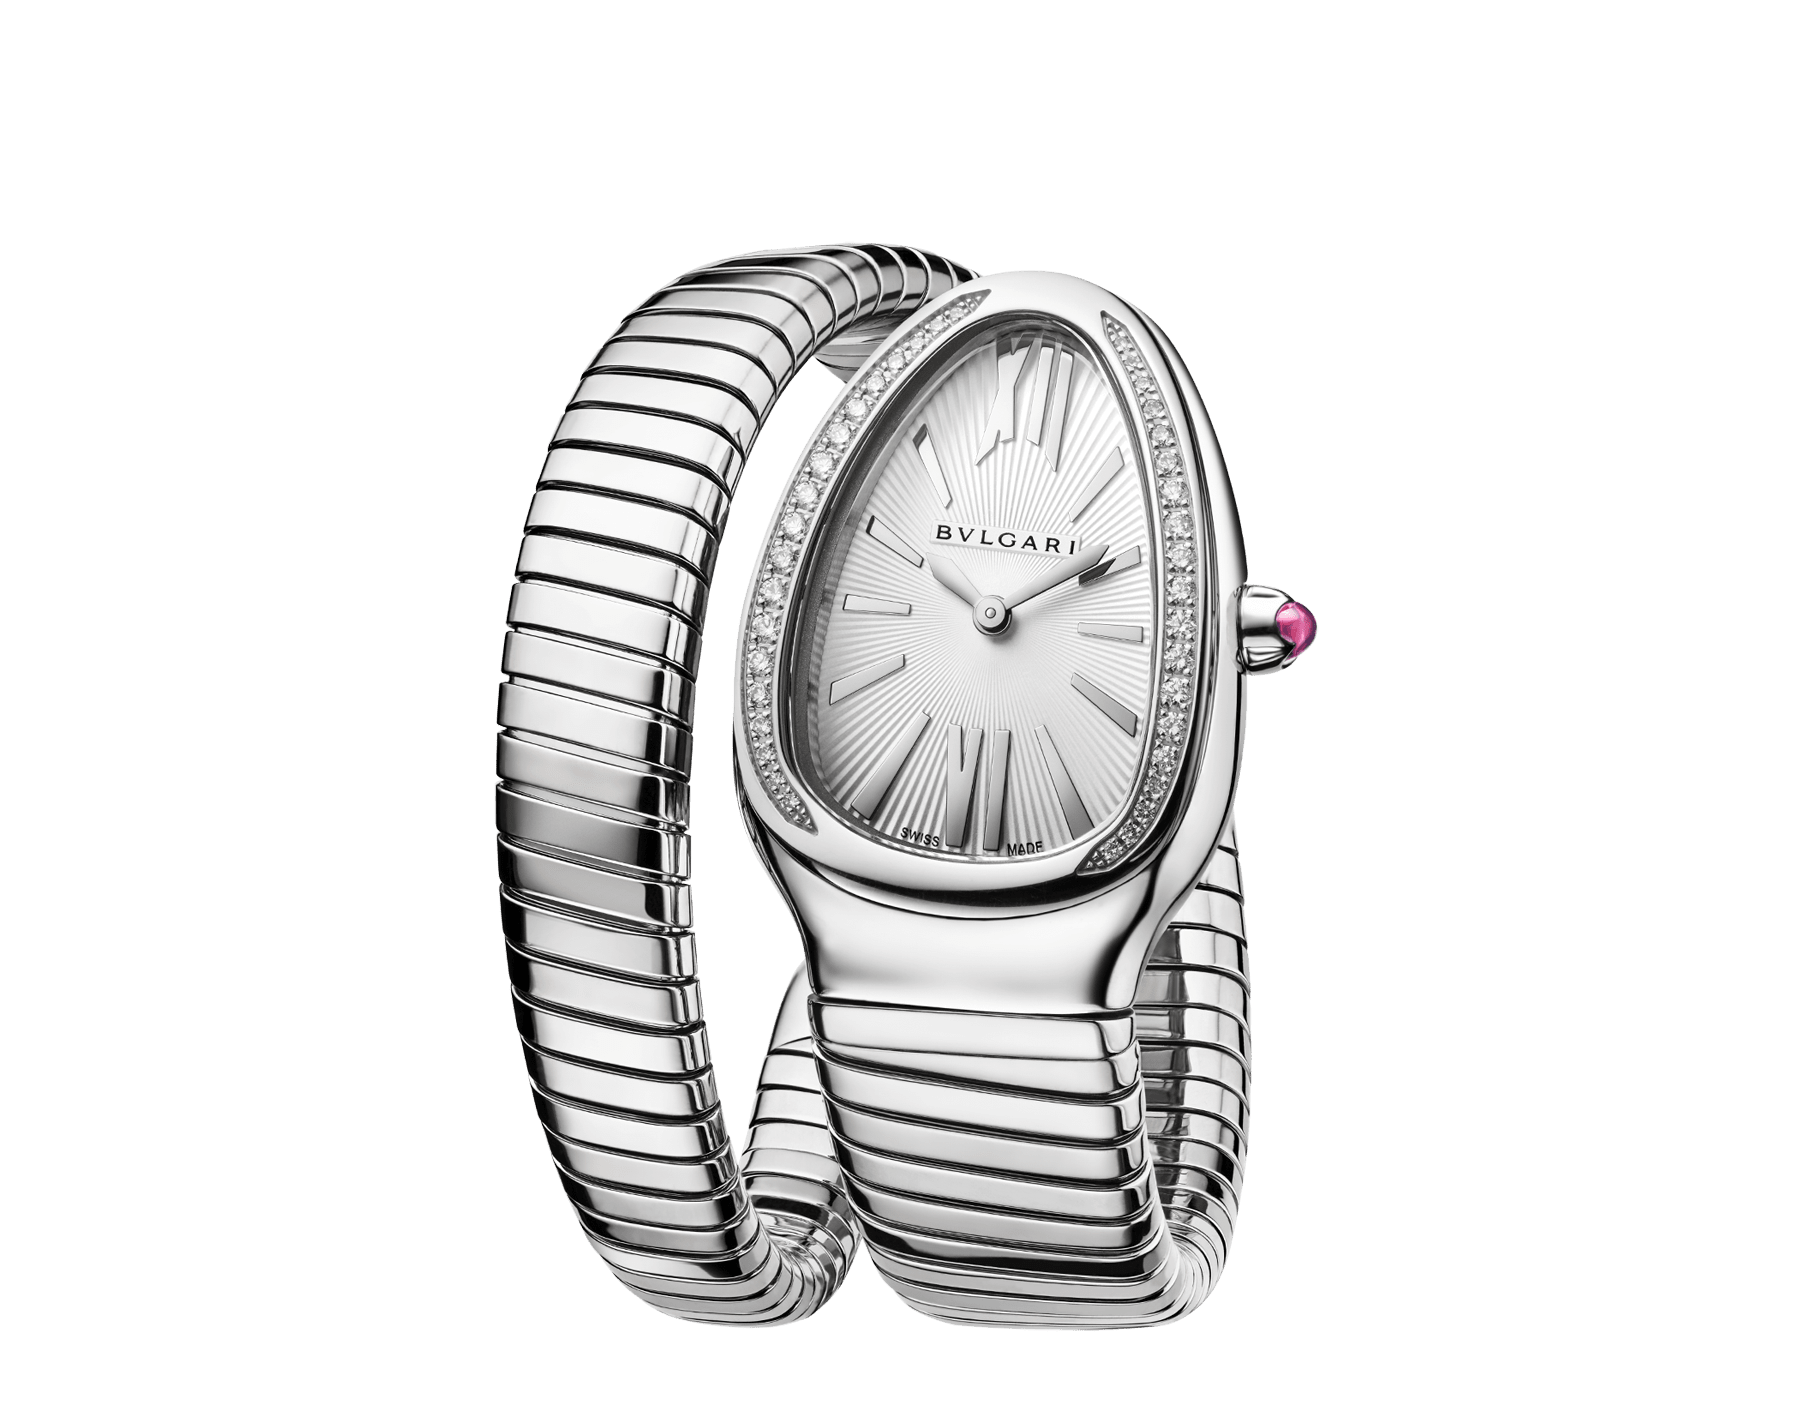 Serpenti Tubogas single spiral watch in stainless steel case and bracelet, bezel set with brilliant cut diamonds and silver opaline dial. Large Size. SrpntTubogas-white-dial2 image 2